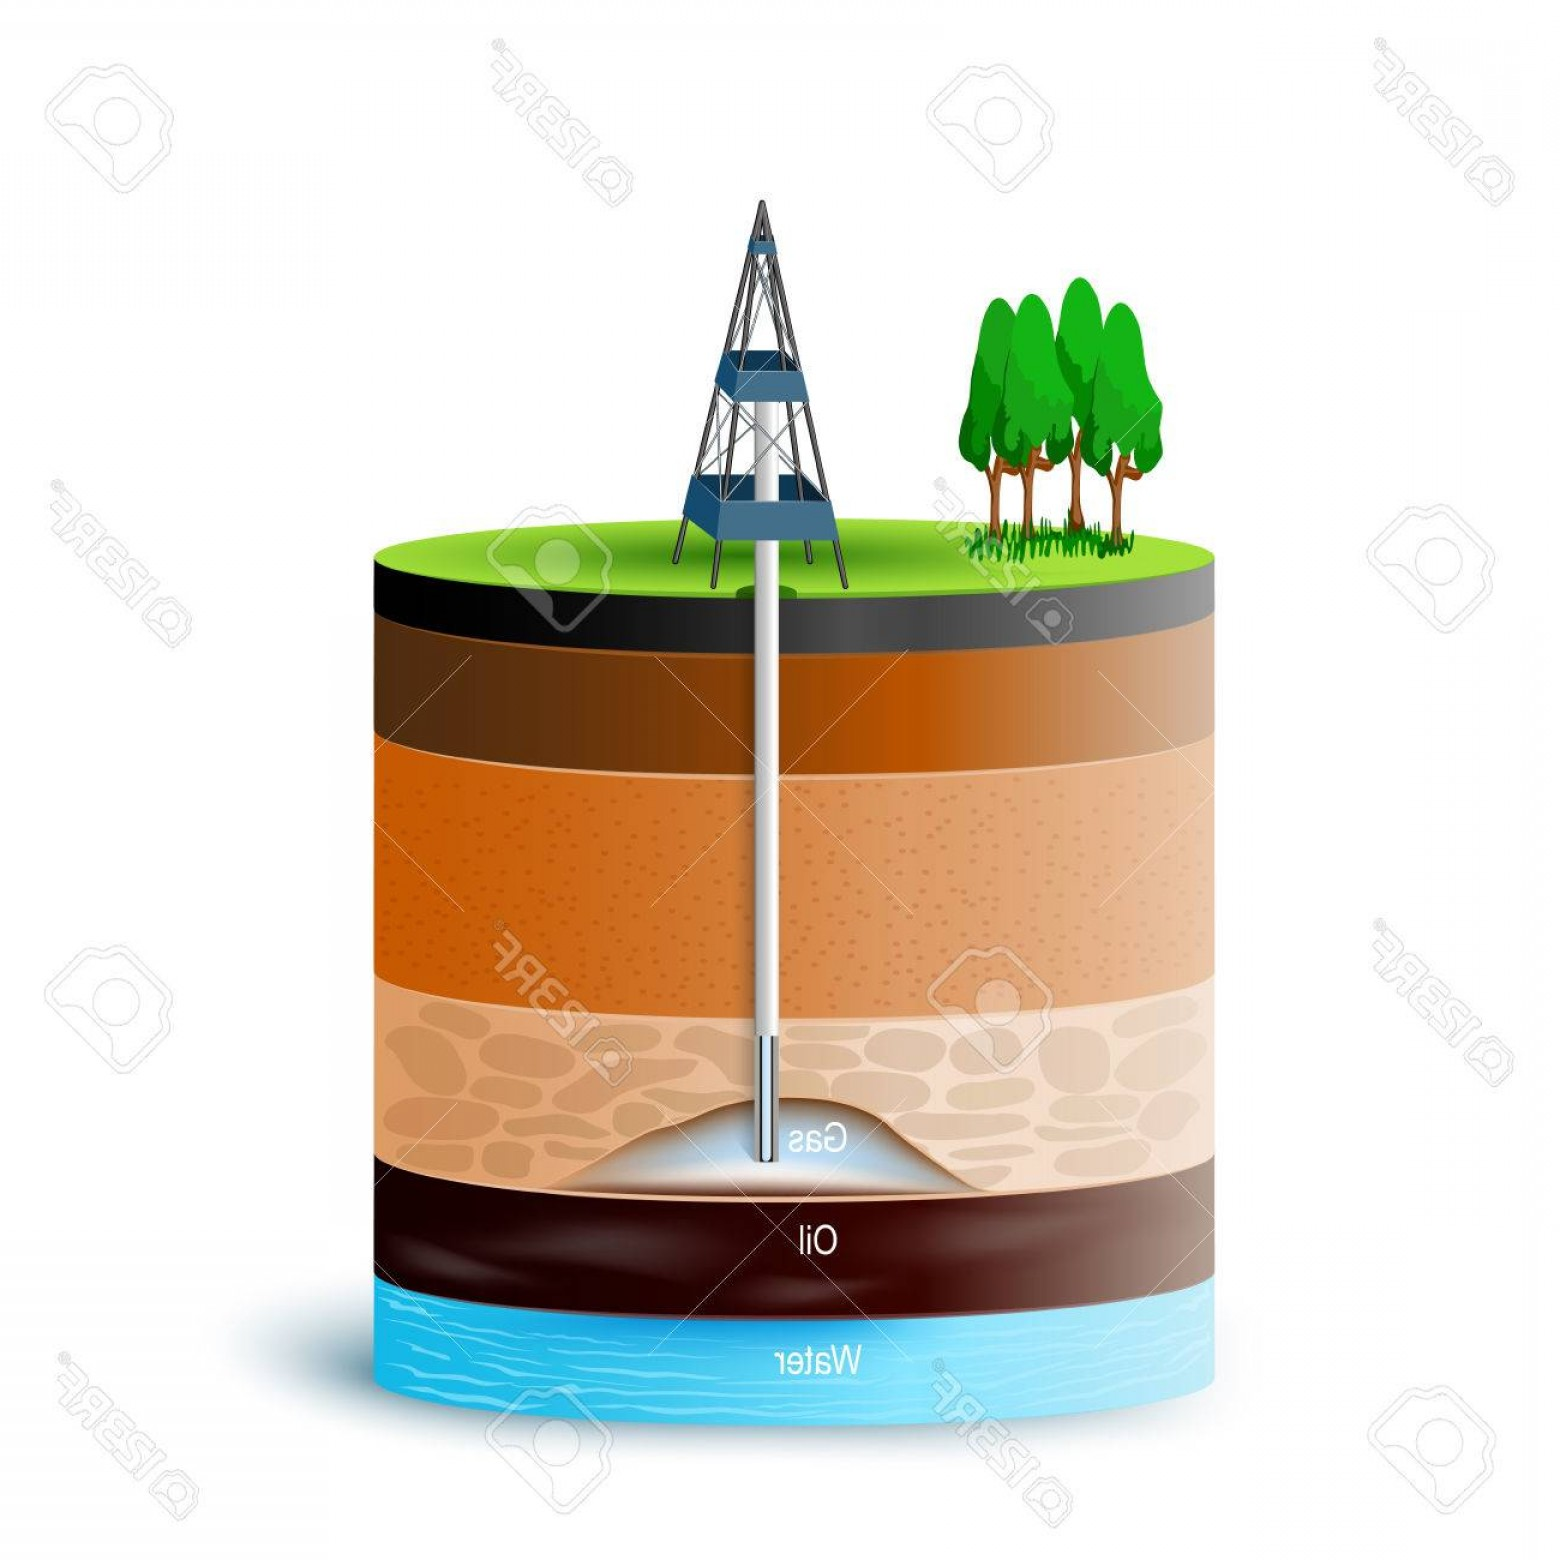 Oilfield Vector Crosses: Photostock Vector Extracting Gas And Oil Ground Cross Section Showing Gas Oil And Water Level Round Vector Isometric